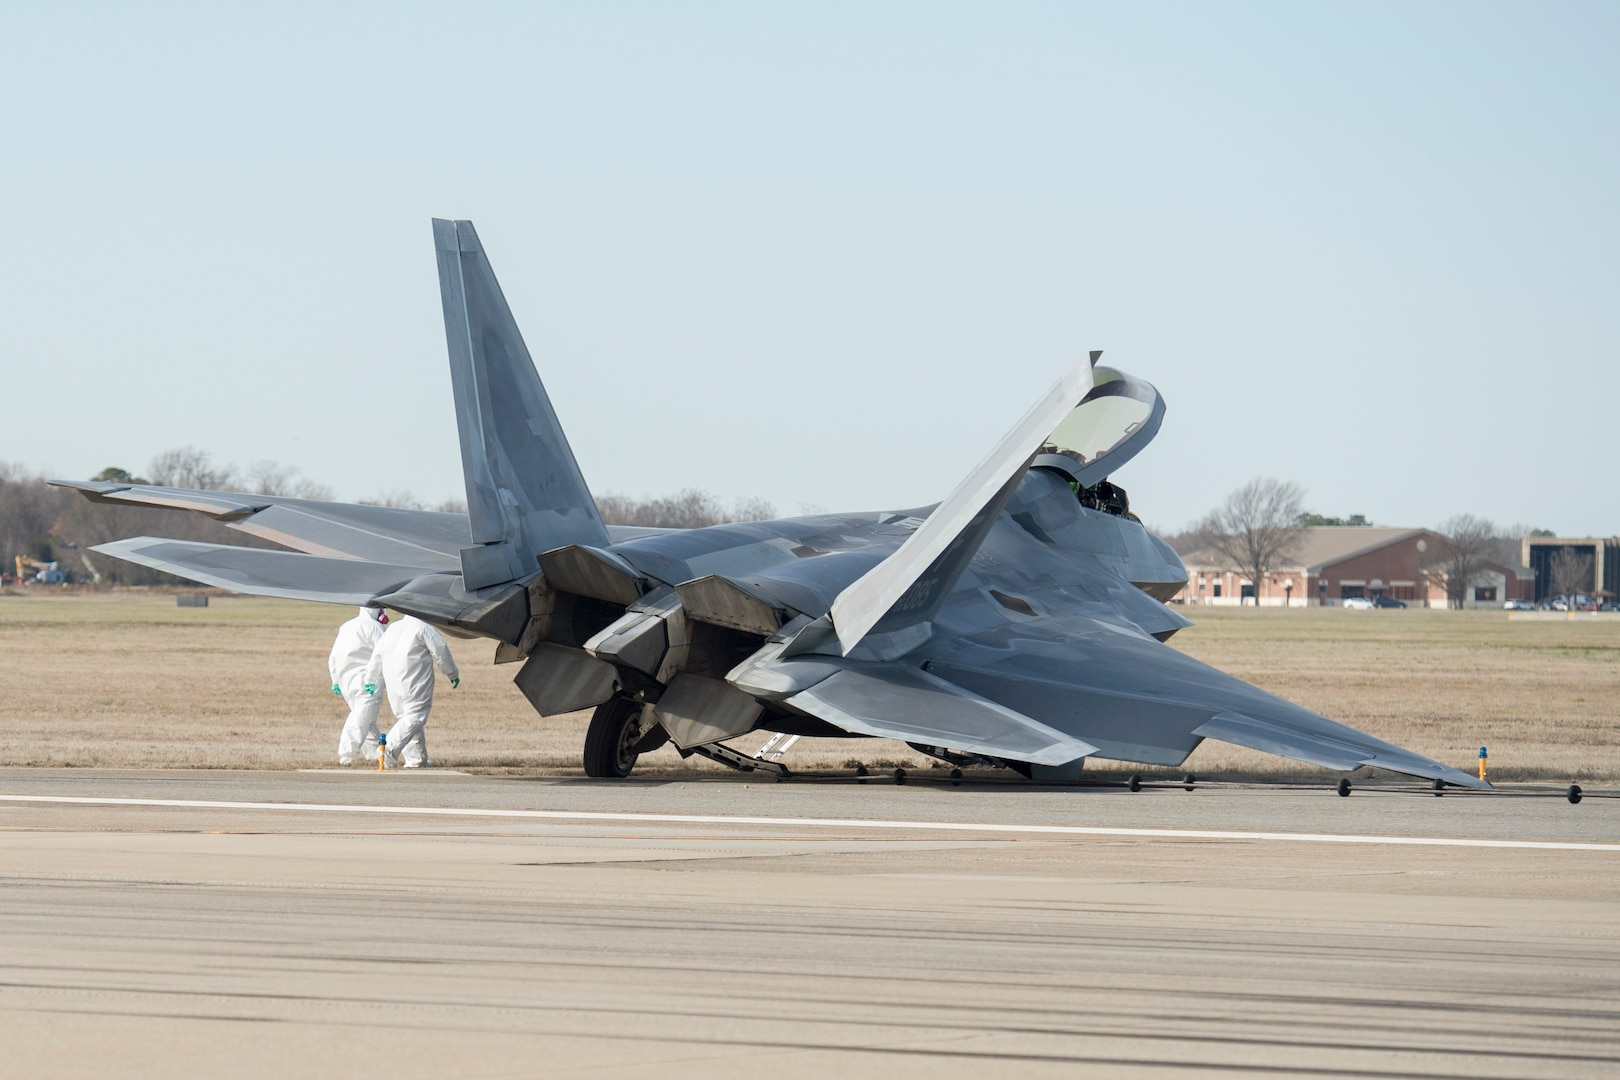 An F-22 Raptor rests on the runway after a mishap